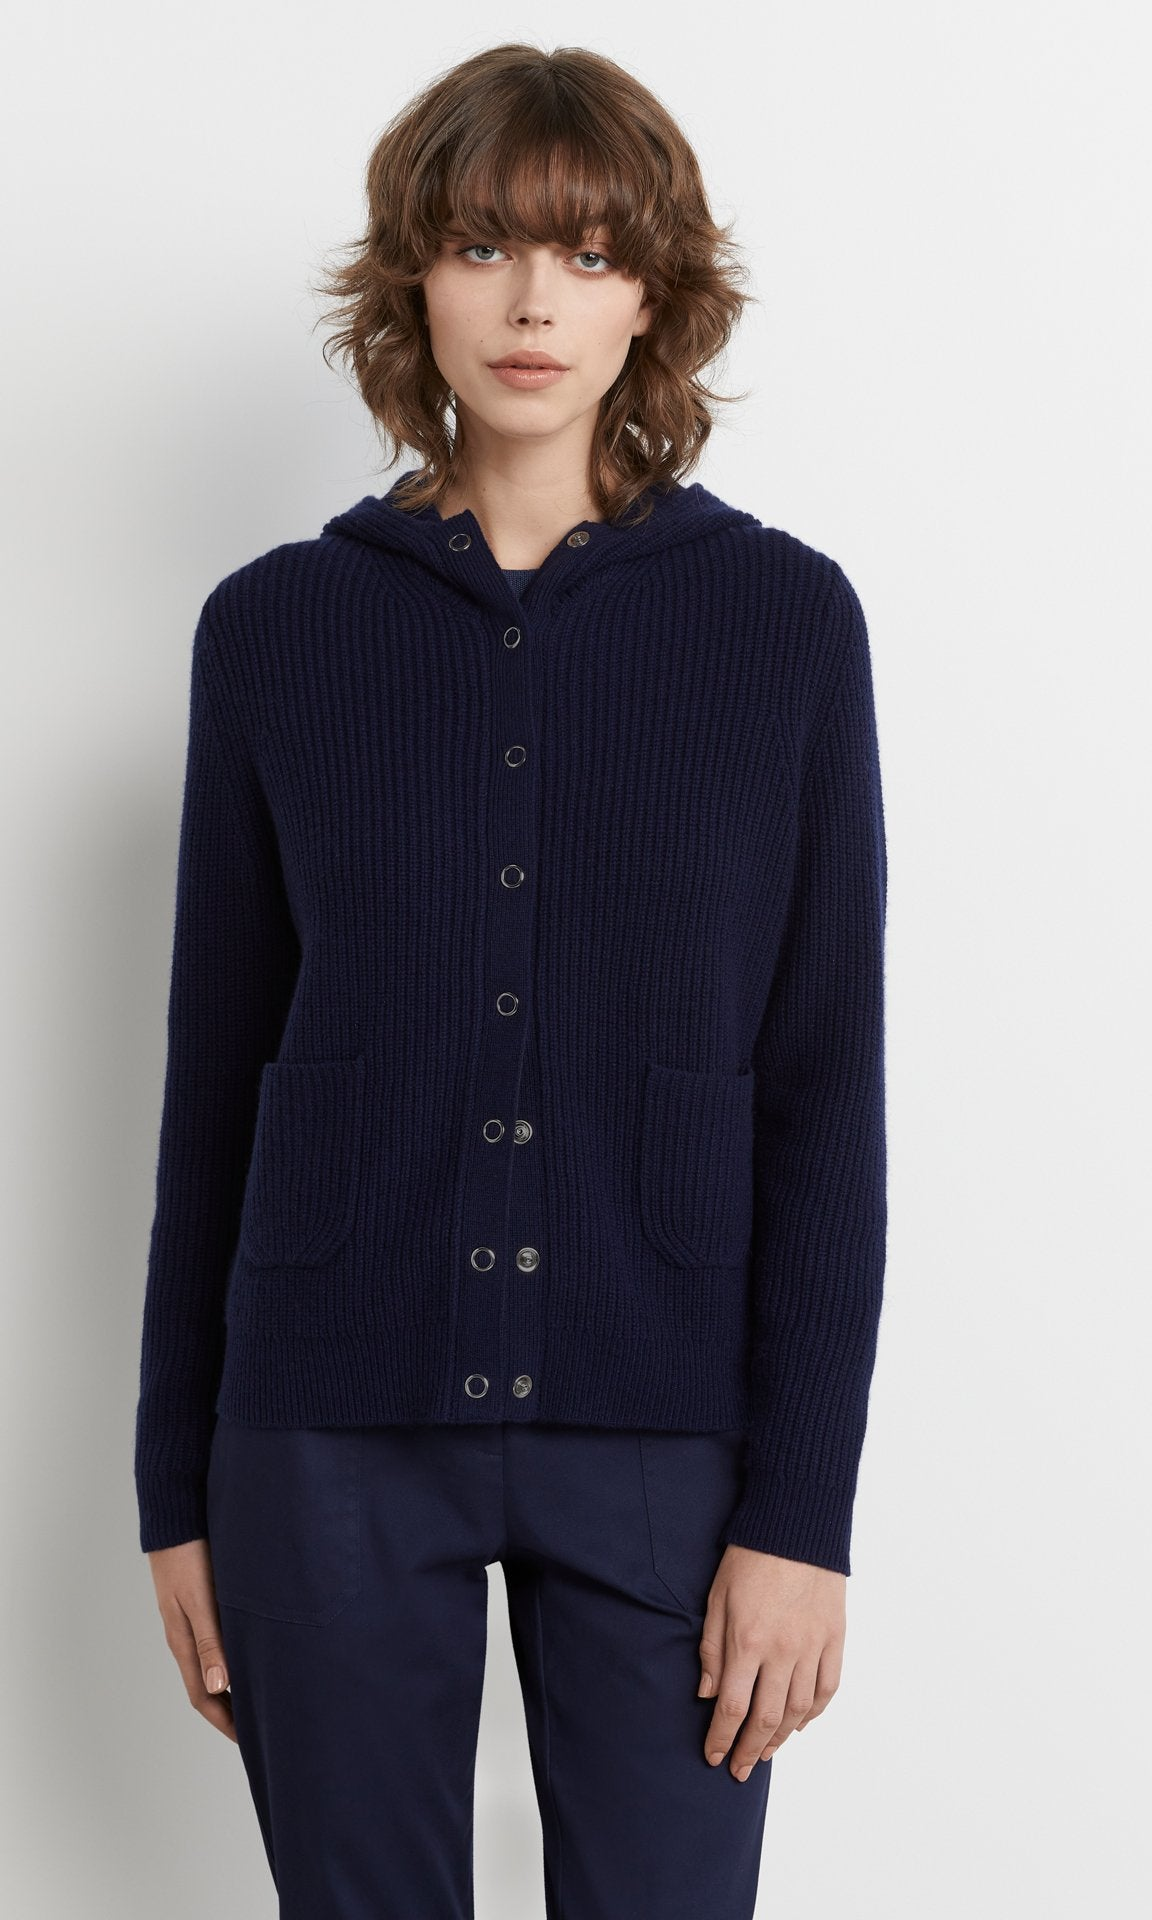 Weston Hooded Cardigan Navy